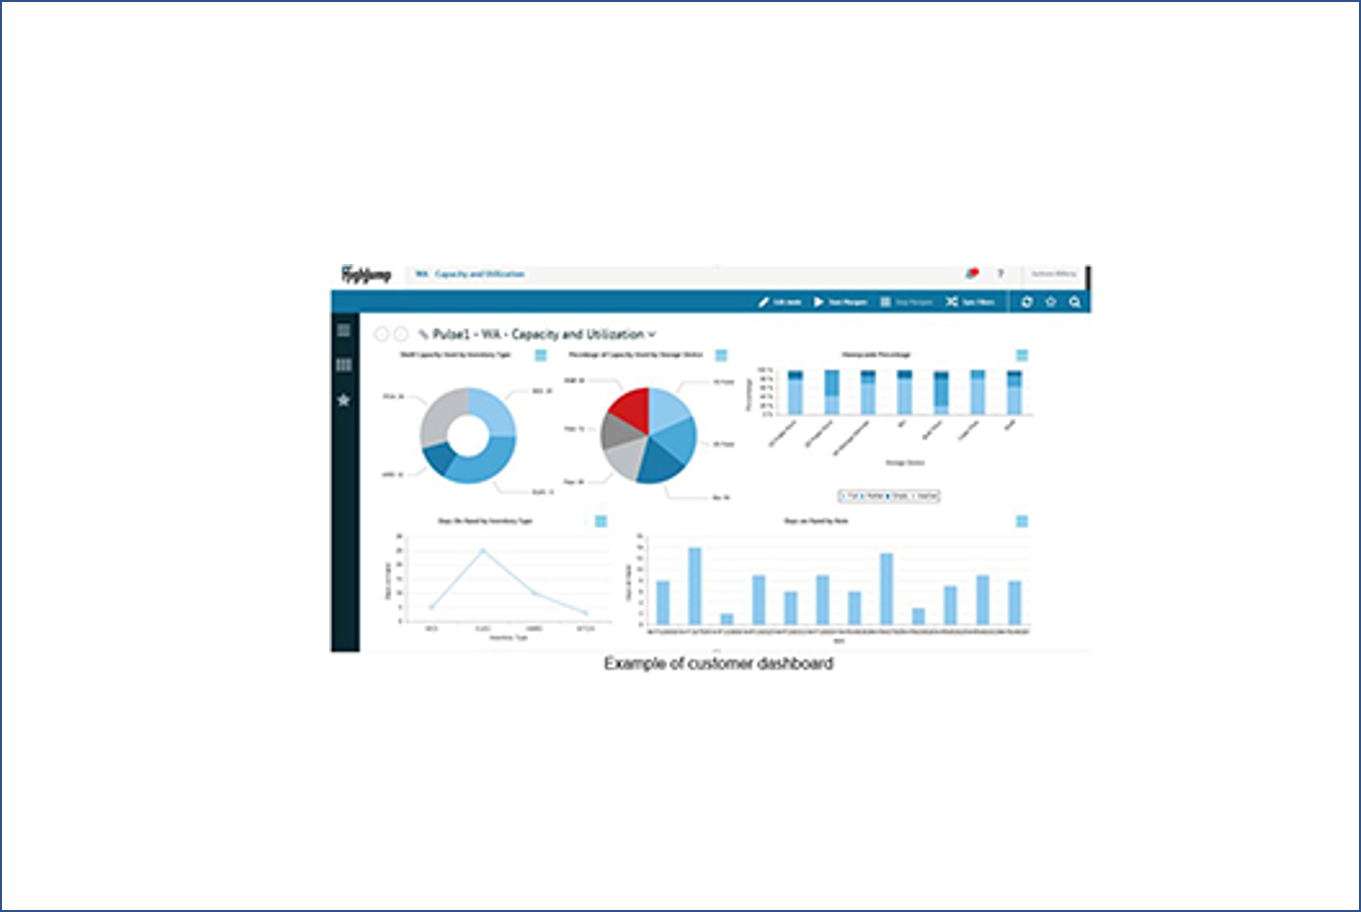 HIGHJUMP ADDS SUPPLY CHAIN ANALYTICS TO ENTERPRISE SOFTWARE SUITE